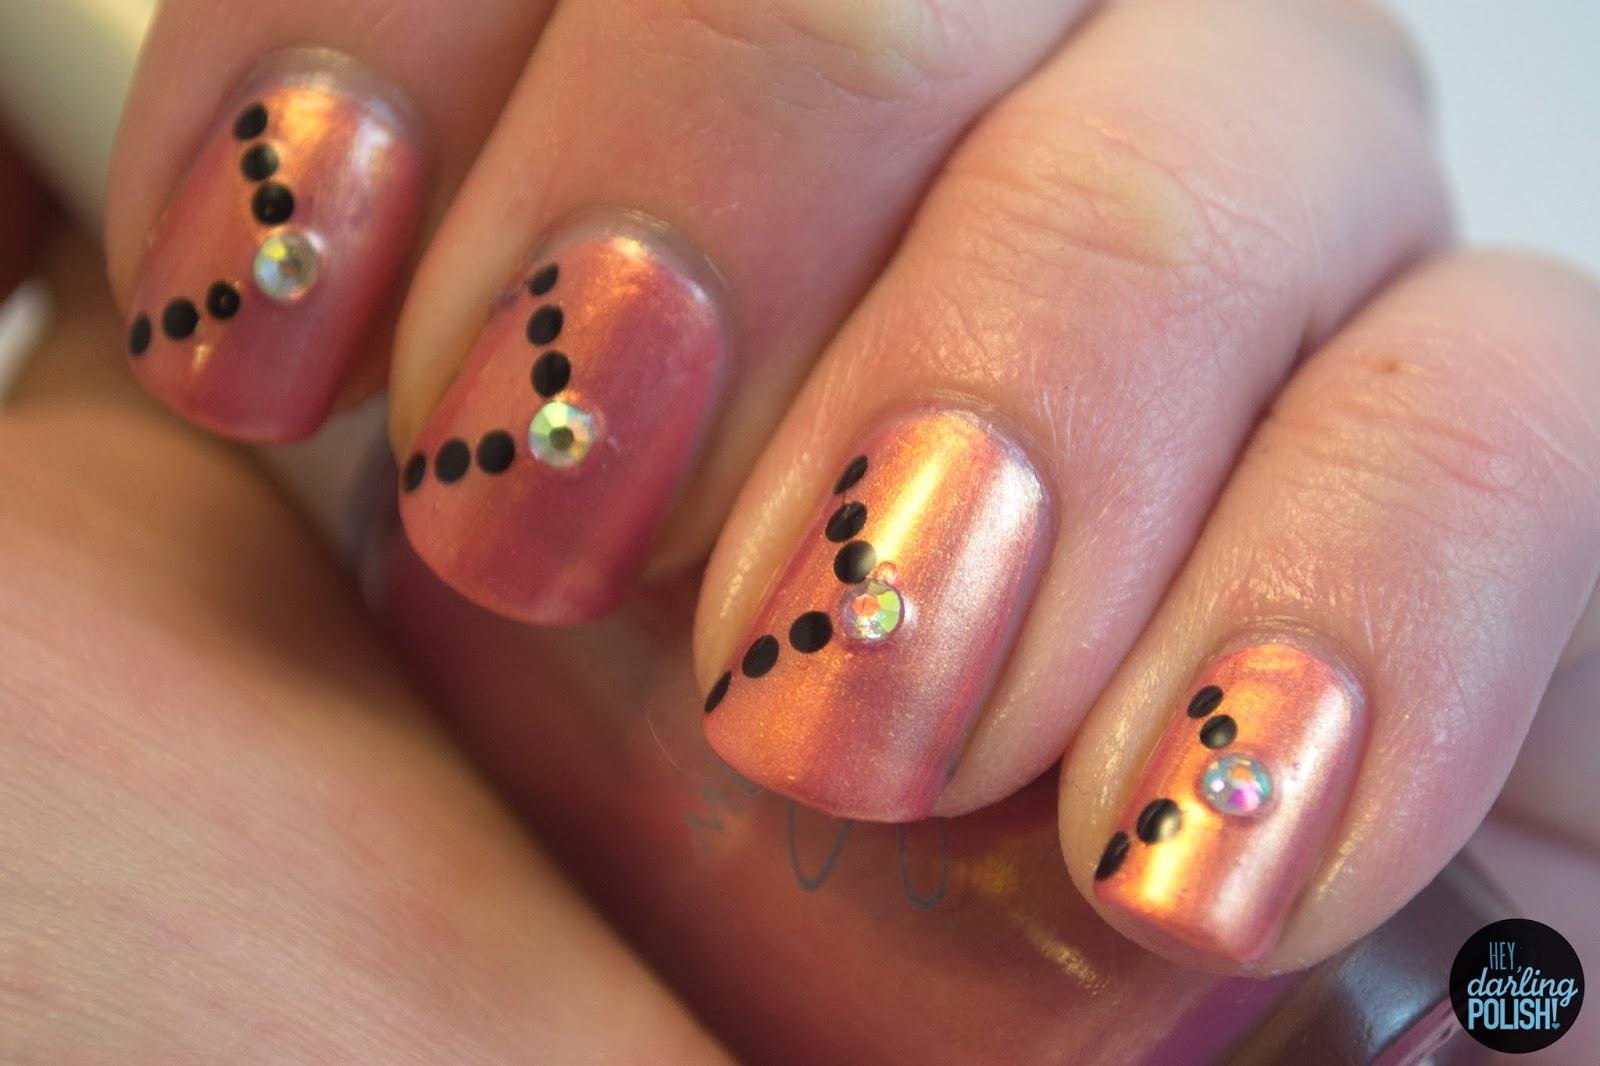 nails, nail polish, nail art, pink, black, rhinestones, golden oldie thursdays, dots, hey darling polish